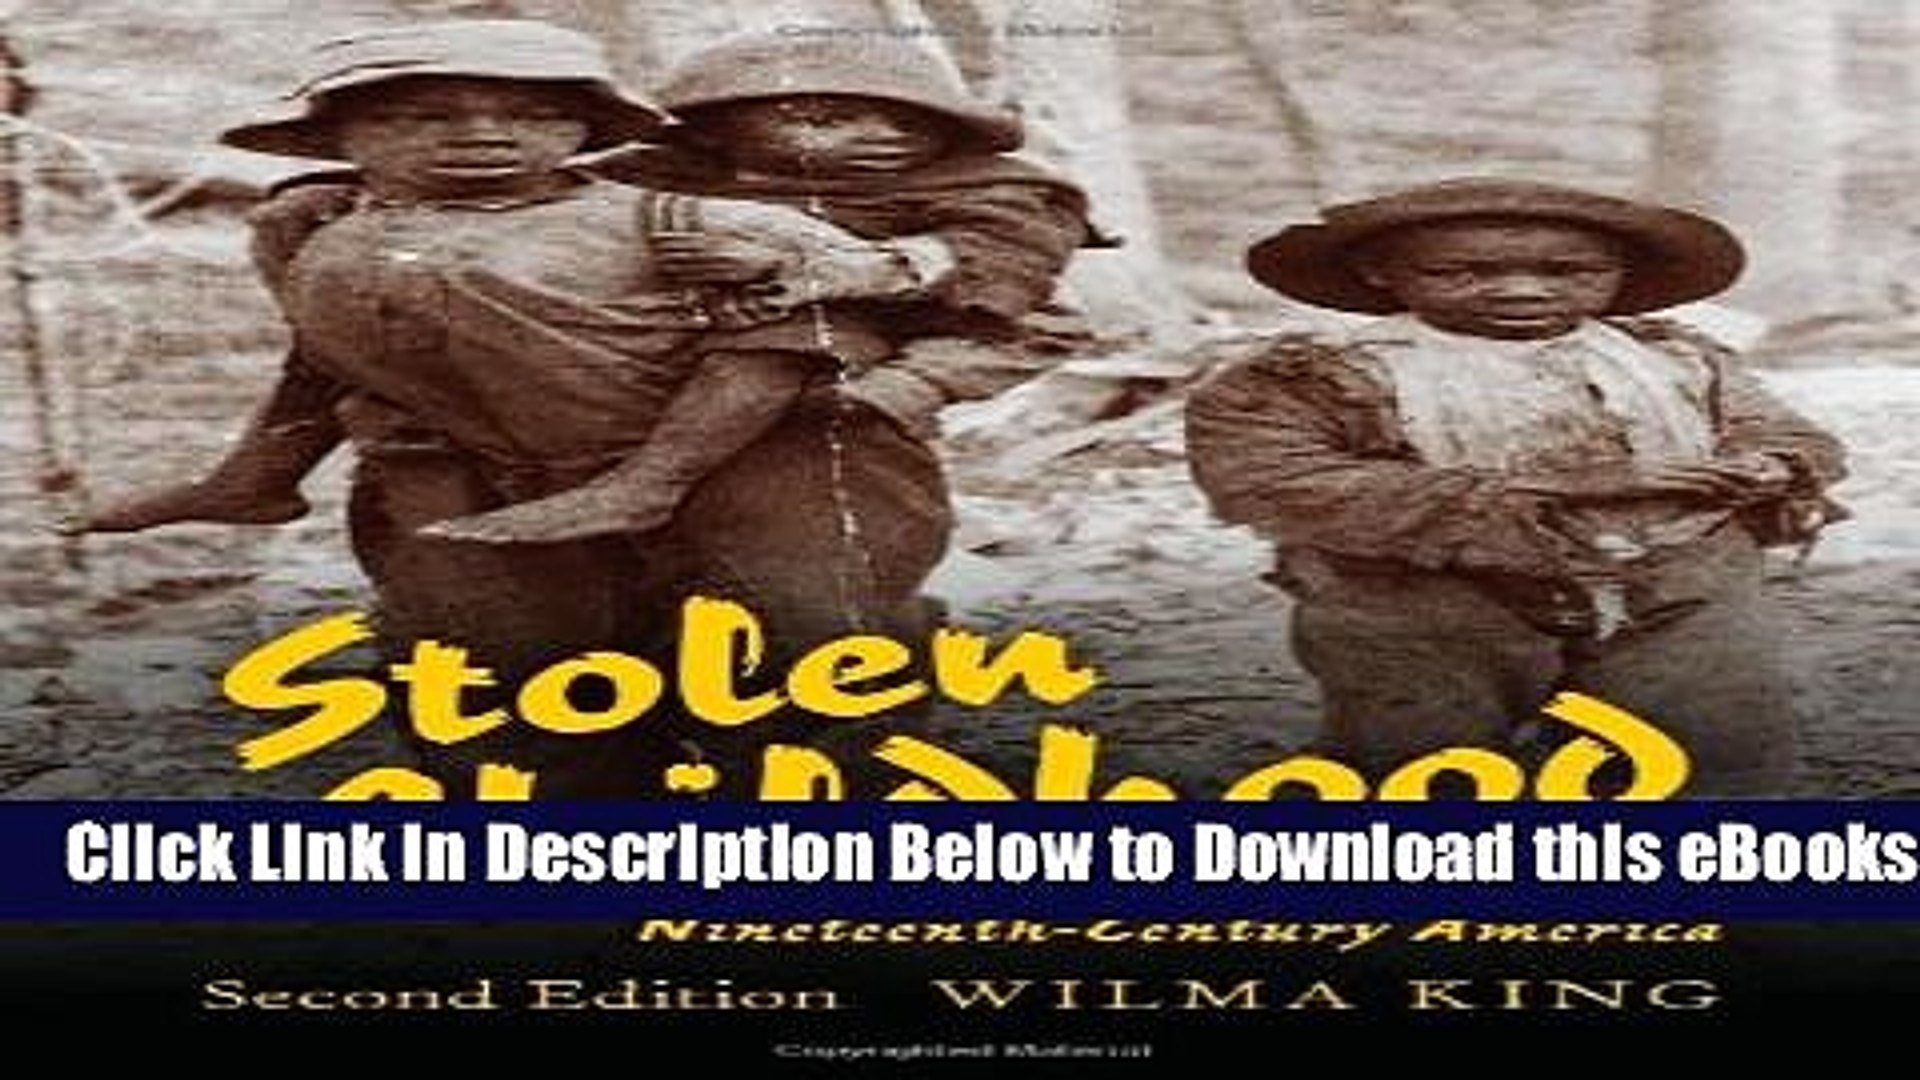 Slave Youth in Nineteenth-Century America Stolen Childhood Second Edition